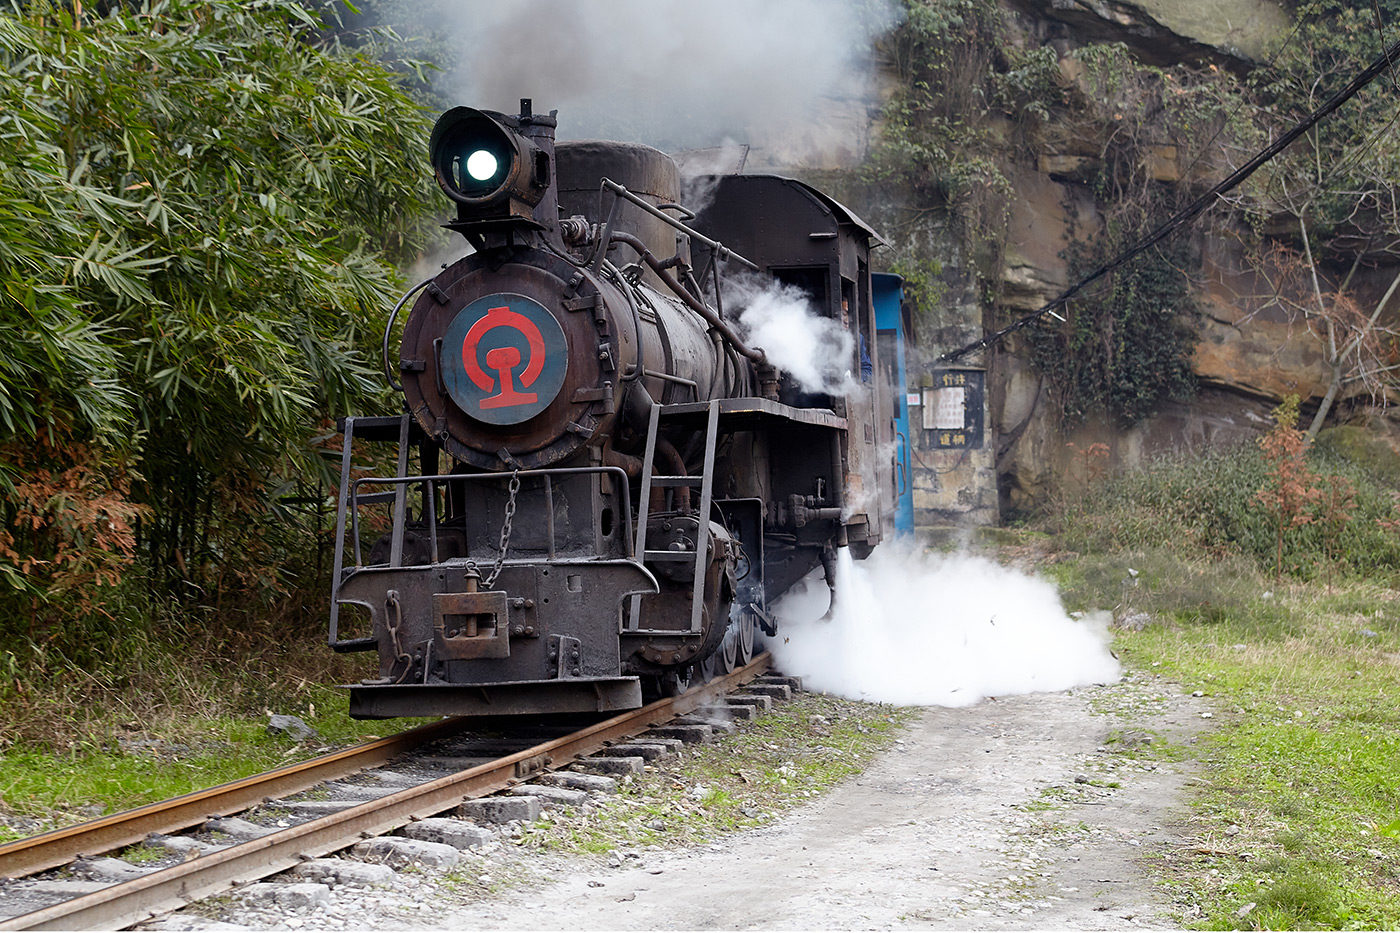 The fire carts of xishi Steam train